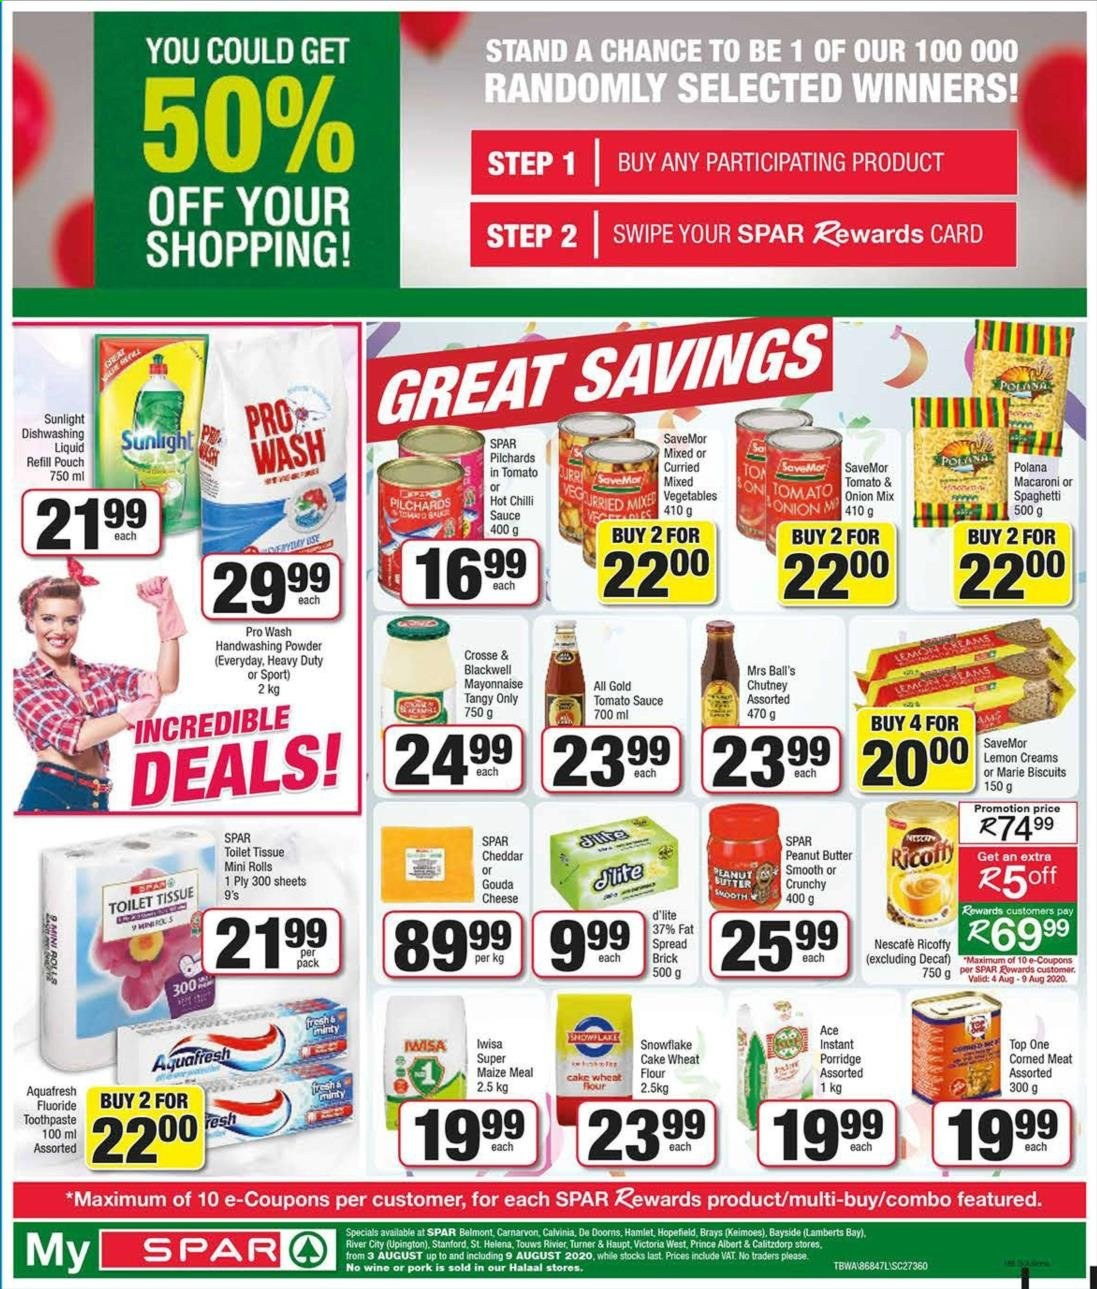 SPAR catalogue  - 08.03.2020 - 08.09.2020 - Sales products - biscuits, flour, gouda, mayonnaise, snowflake, spaghetti, tomato sauce, turner, wheat flour, pork meat, cheddar, peanut butter, macaroni, vegetable, toothpaste, fat spread, wine, pilchards, cheese, ricoffy, dishwashing liquid, sauce, porridge, toilet tissue, refill, rolls, meat, nescafé, cake wheat flour, onion, vegetables, lemon, tomato. Page 1.